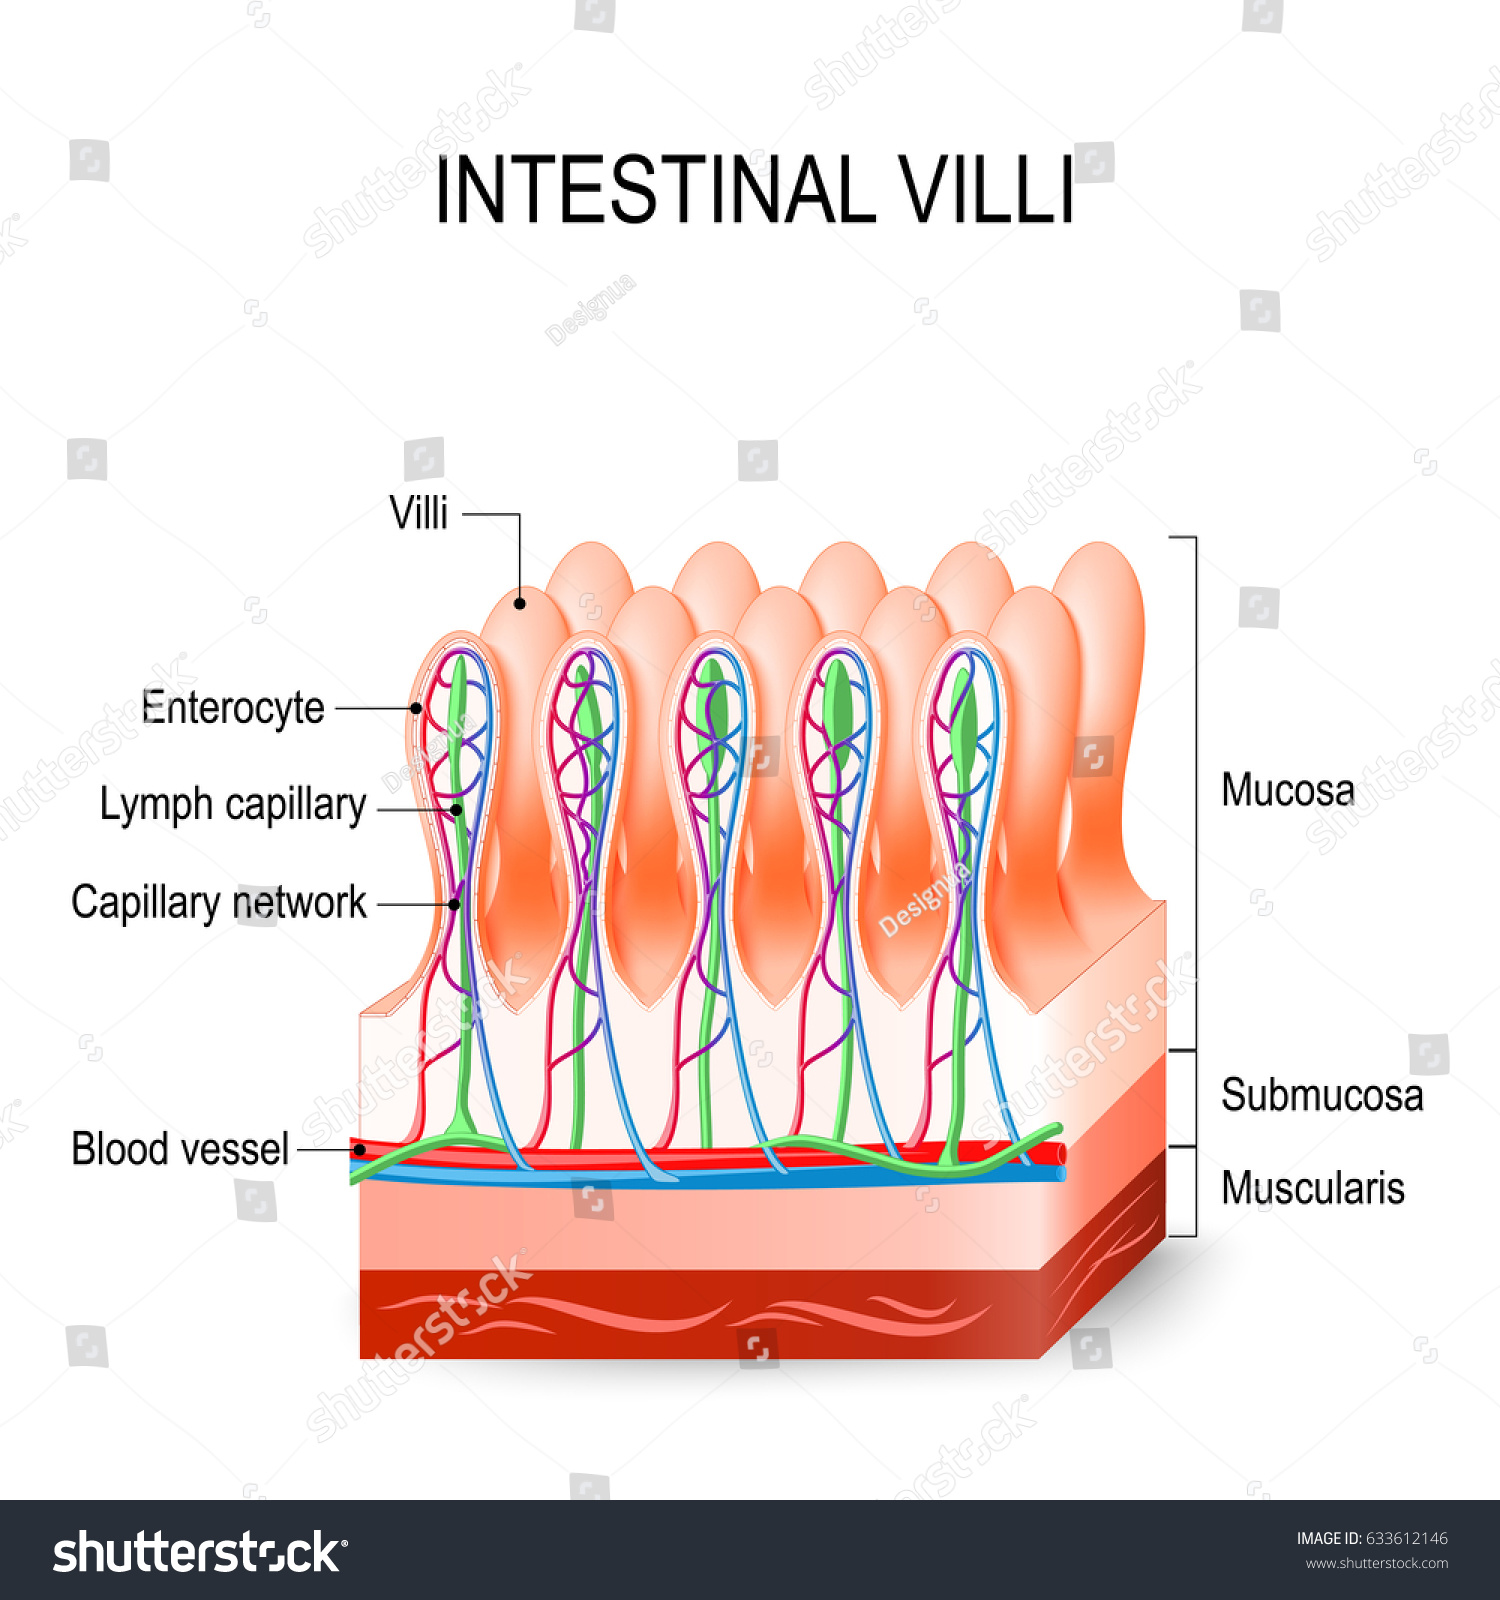 Intestinal Villi Small Intestine Showing Arteries Stock Vector ...